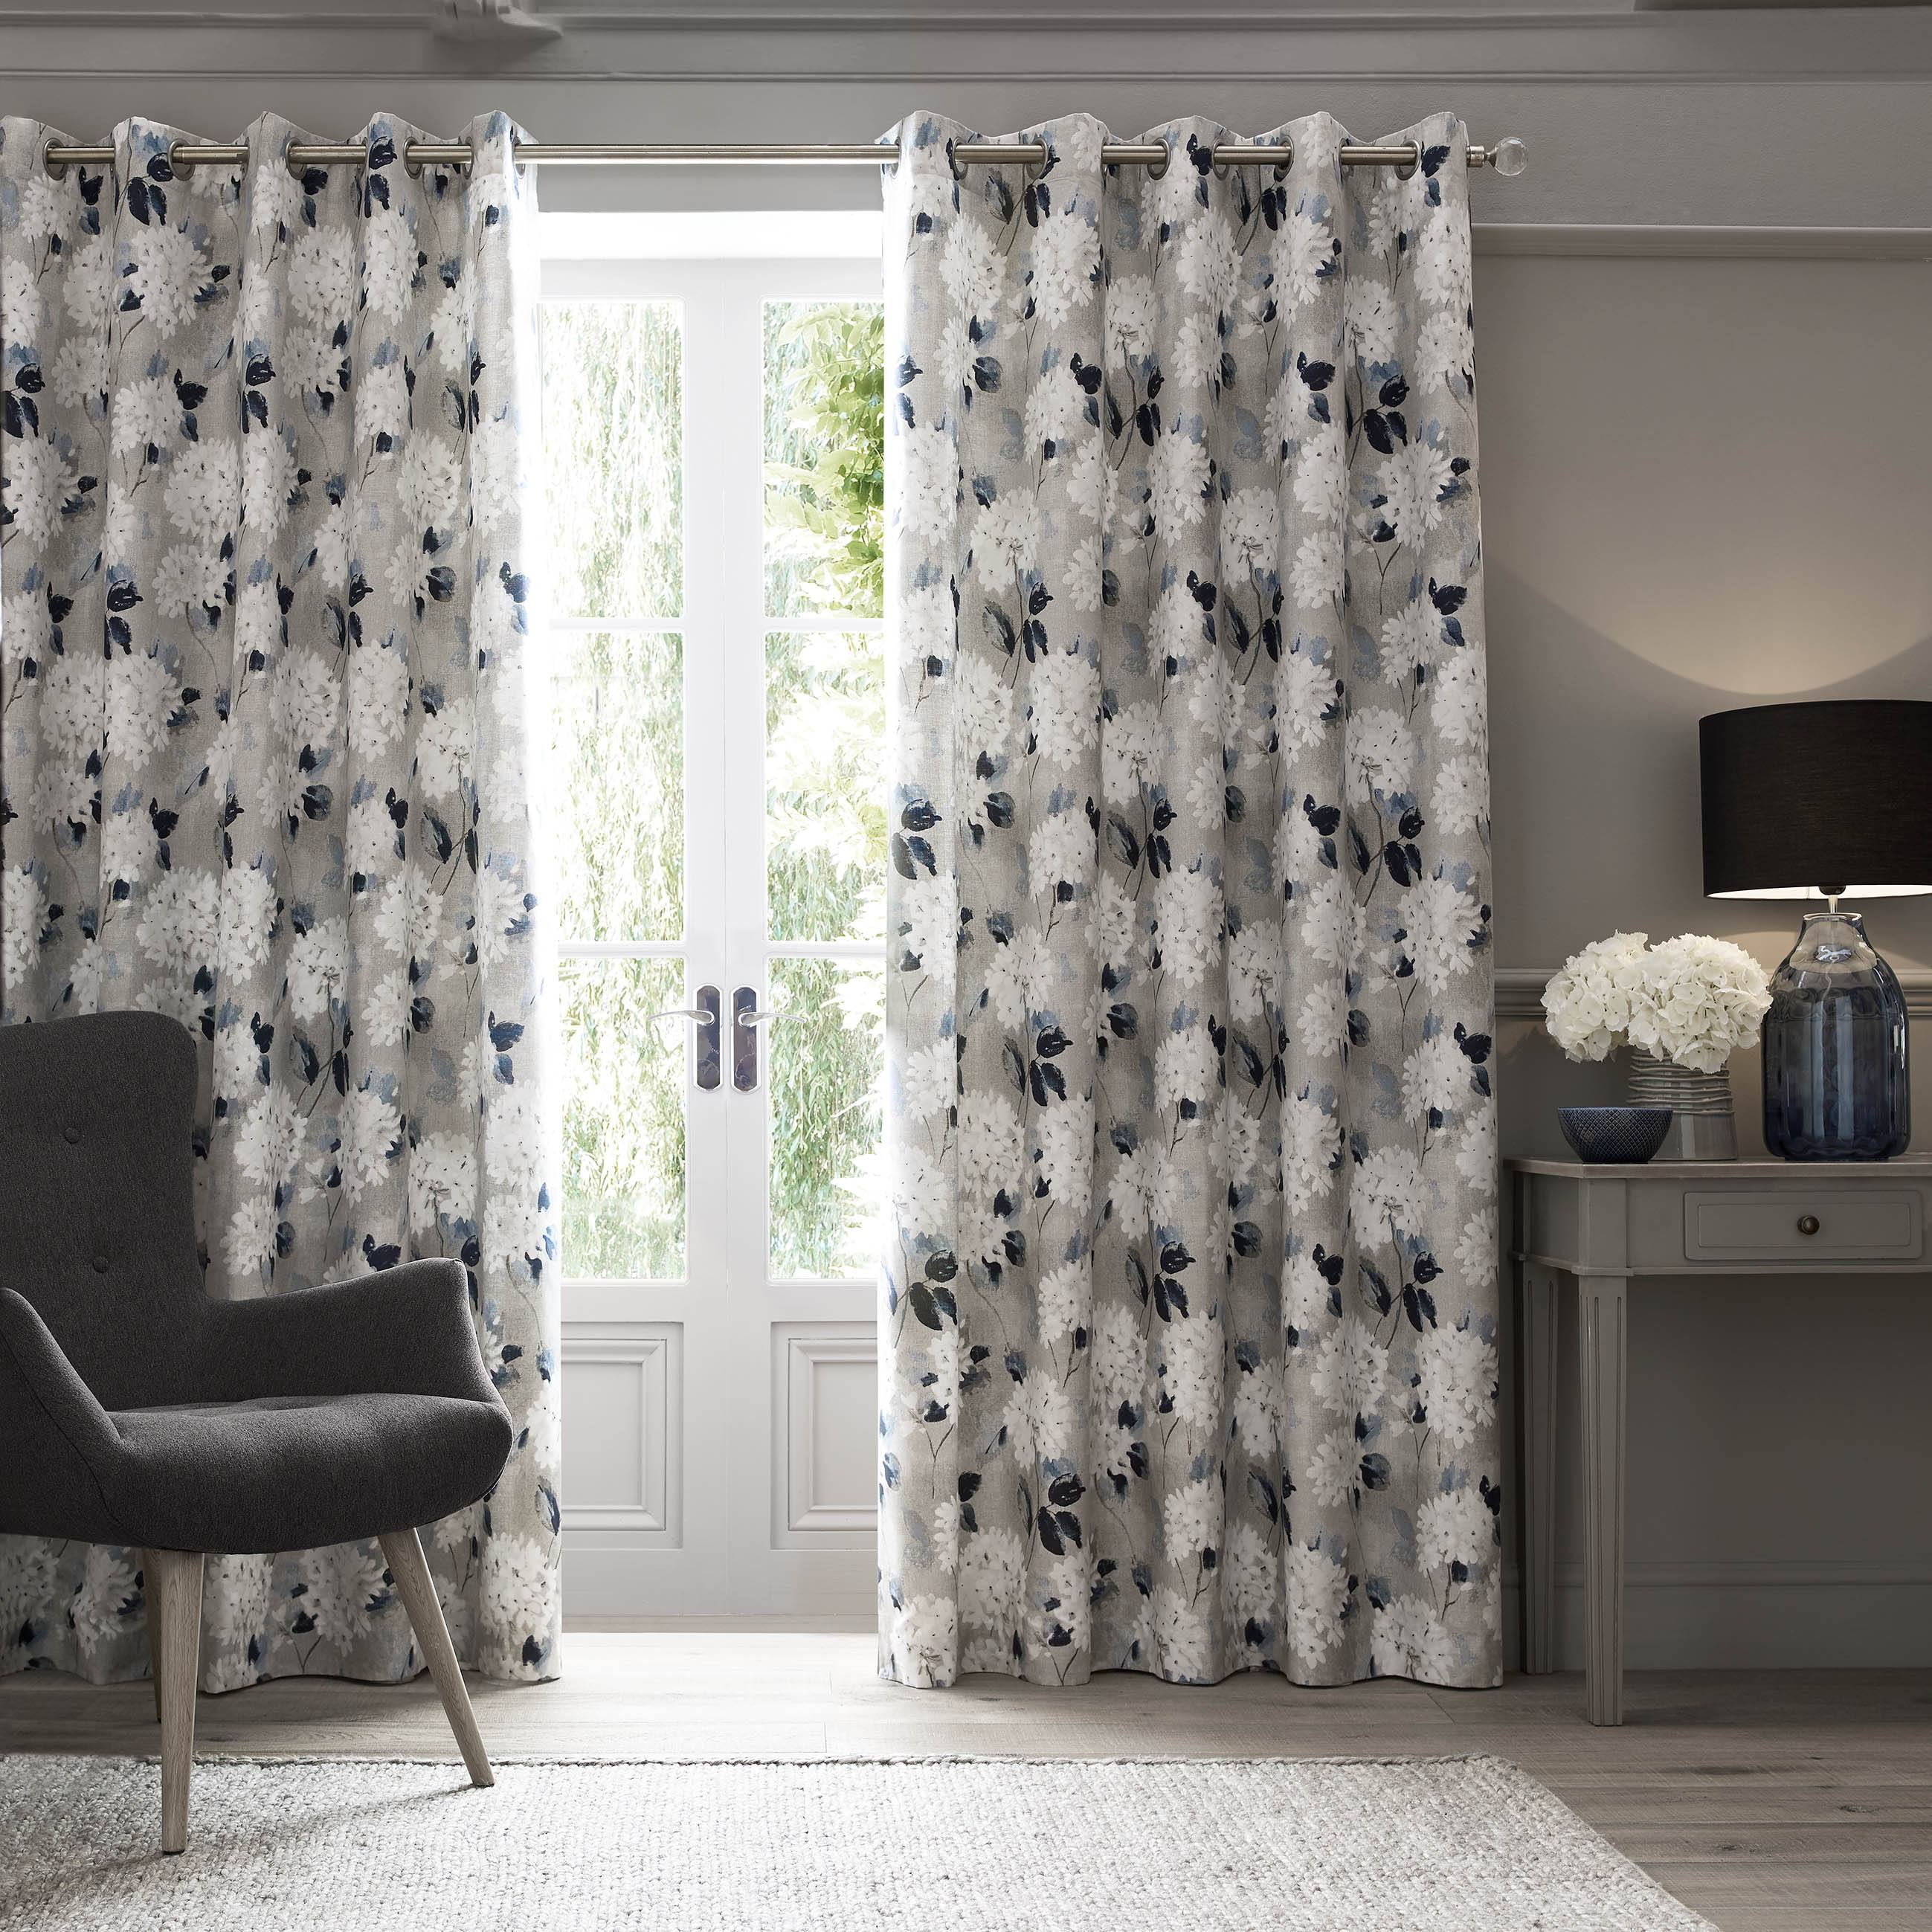 Beginners Guide To Buying Ready Made Curtains / Home Focus Blog Throughout All Seasons Blackout Window Curtains (Image 6 of 20)